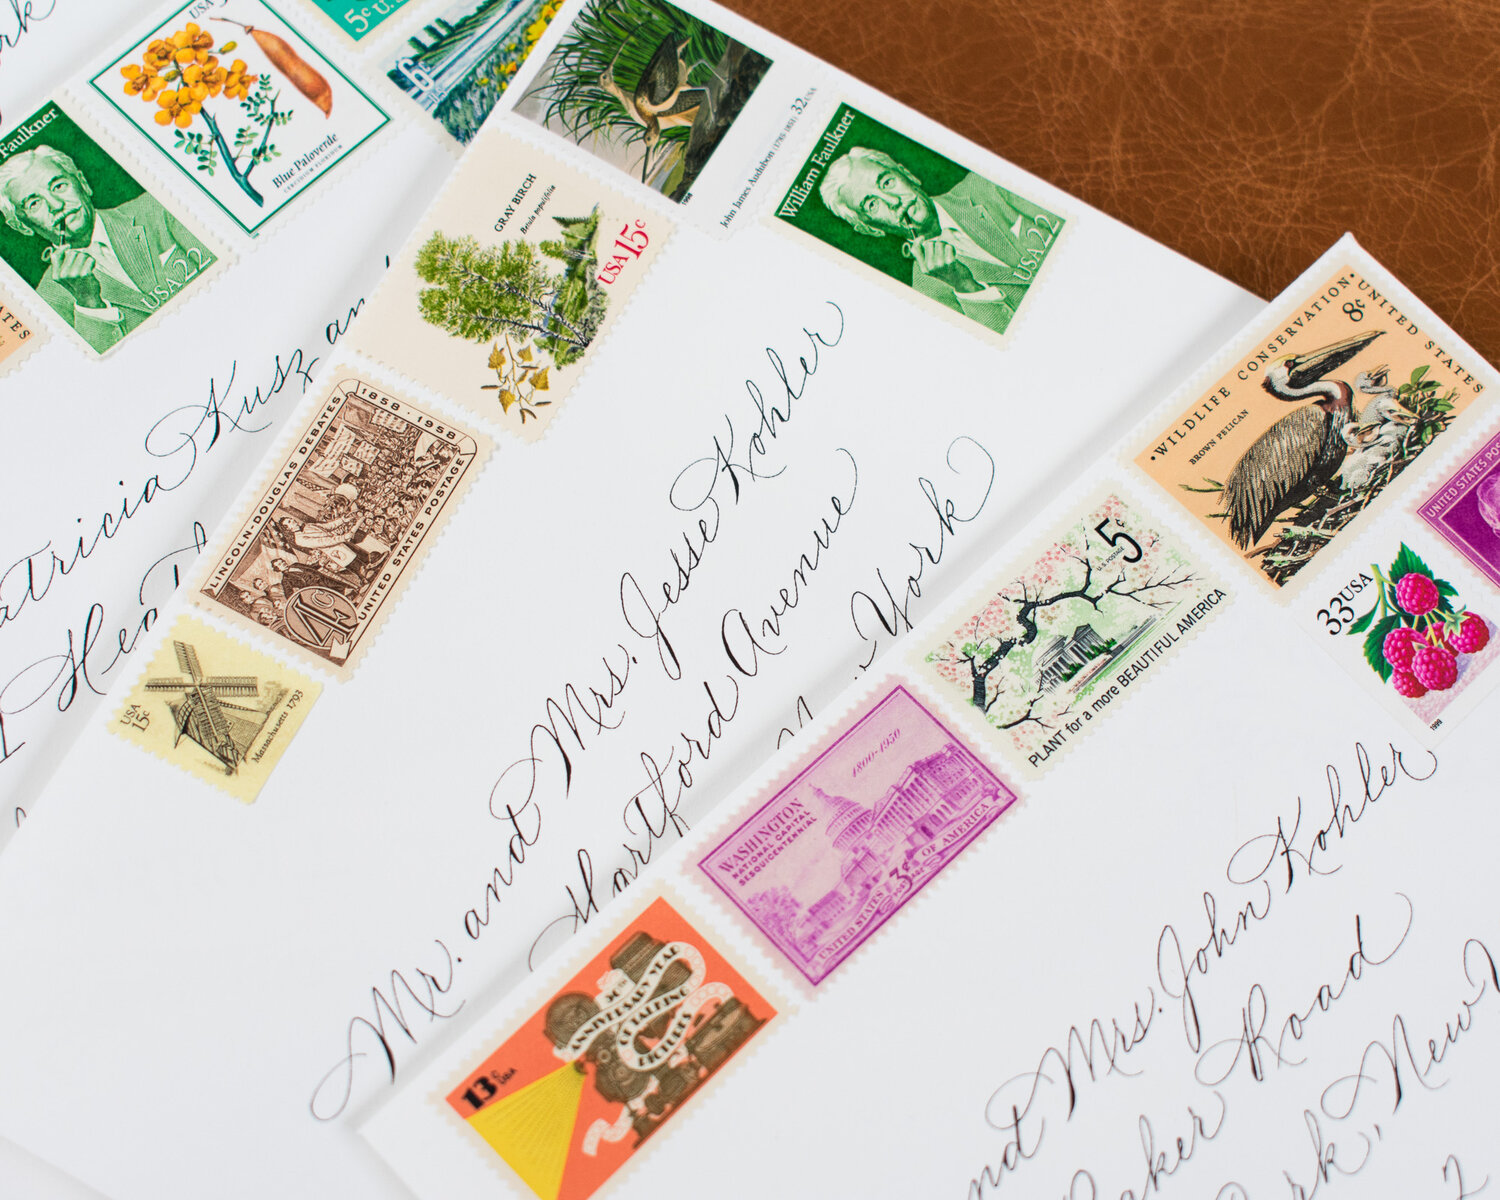 Spencerian/Classic script envelope addressing with vintage stamps for wedding invitations.